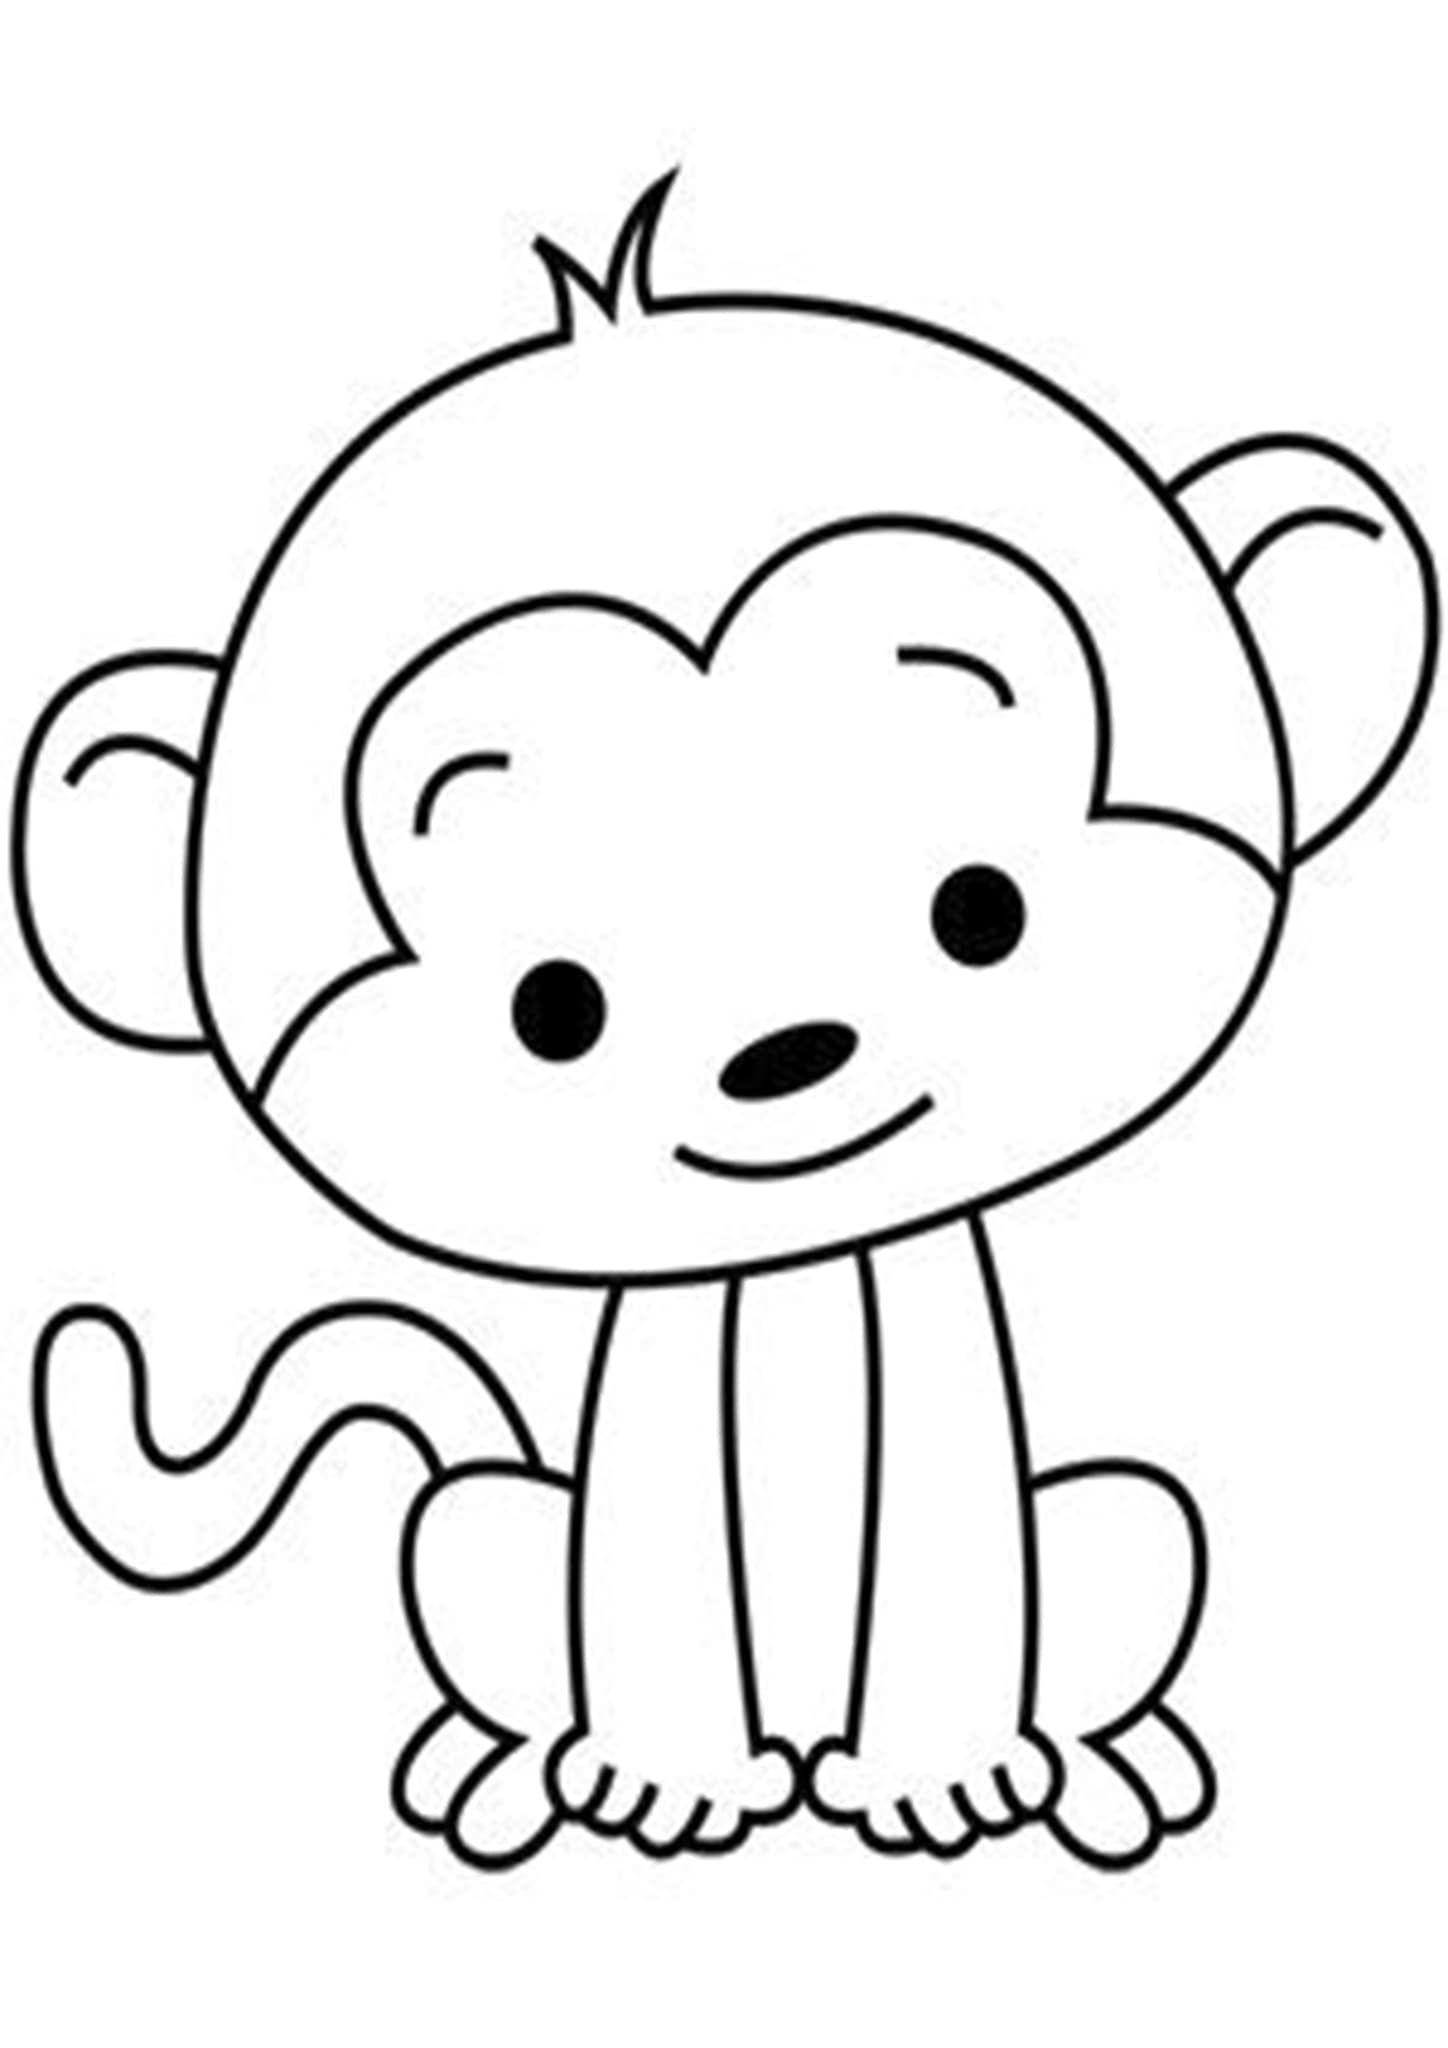 Free Easy To Print Baby Animal Coloring Pages In 2020 Animal Coloring Pages Coloring Pages Art Drawings For Kids